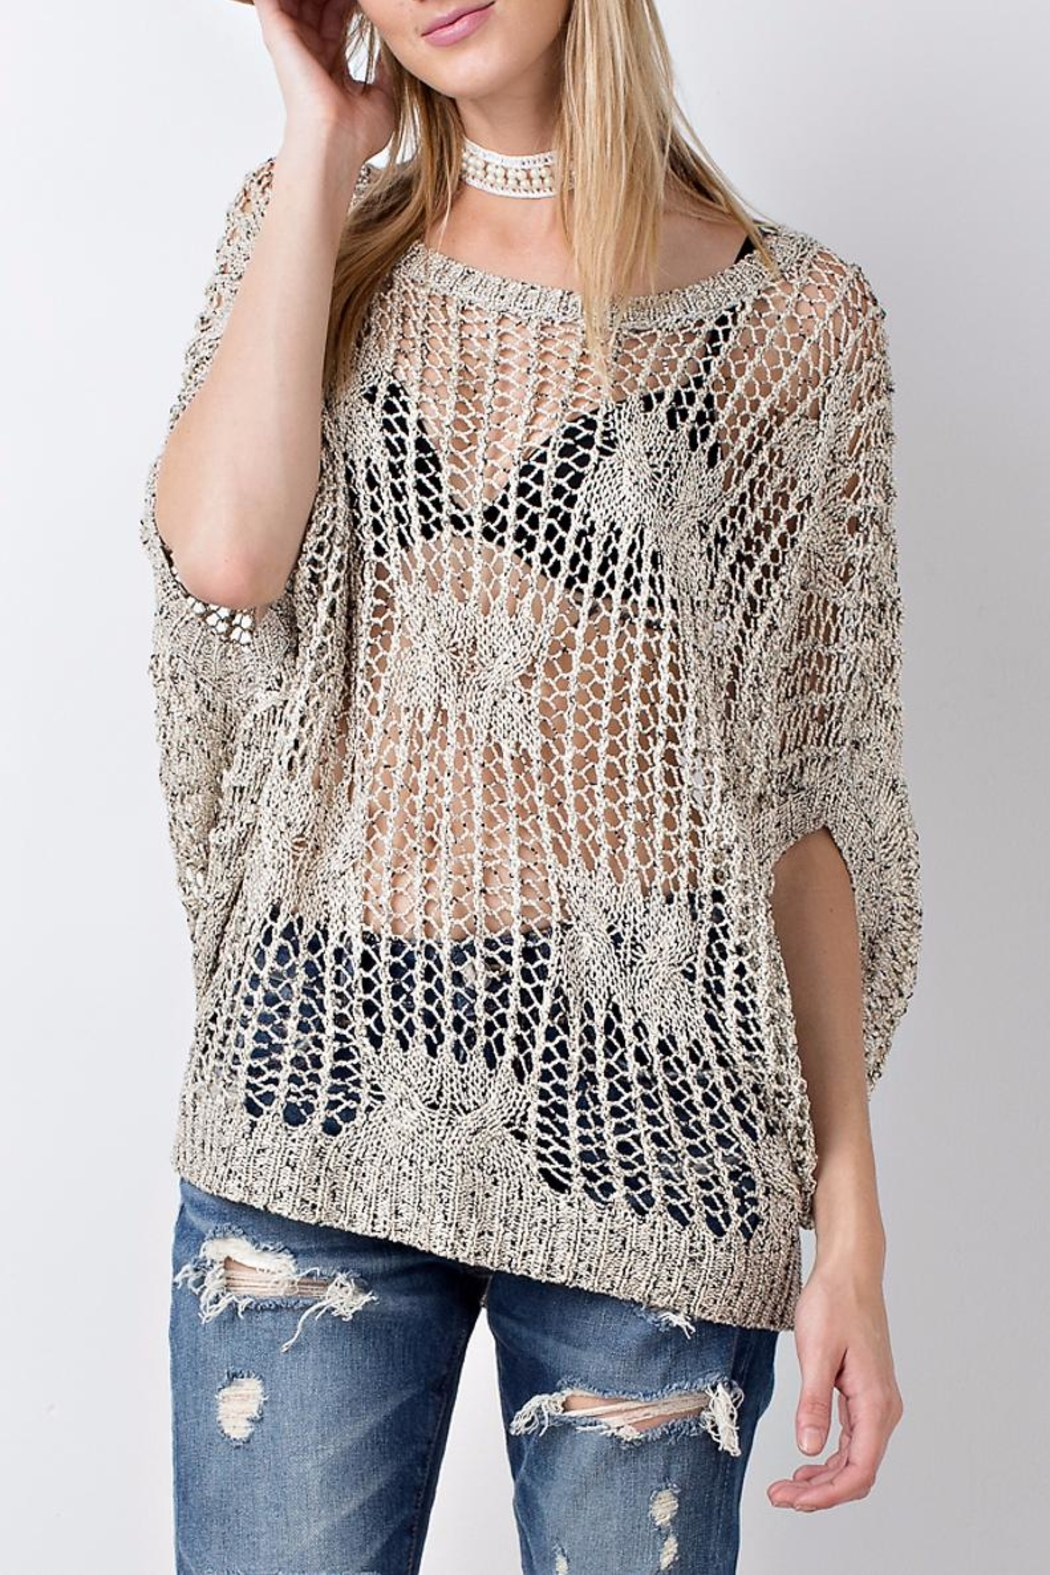 People Outfitter Crochet Knit Sweater Top - Main Image